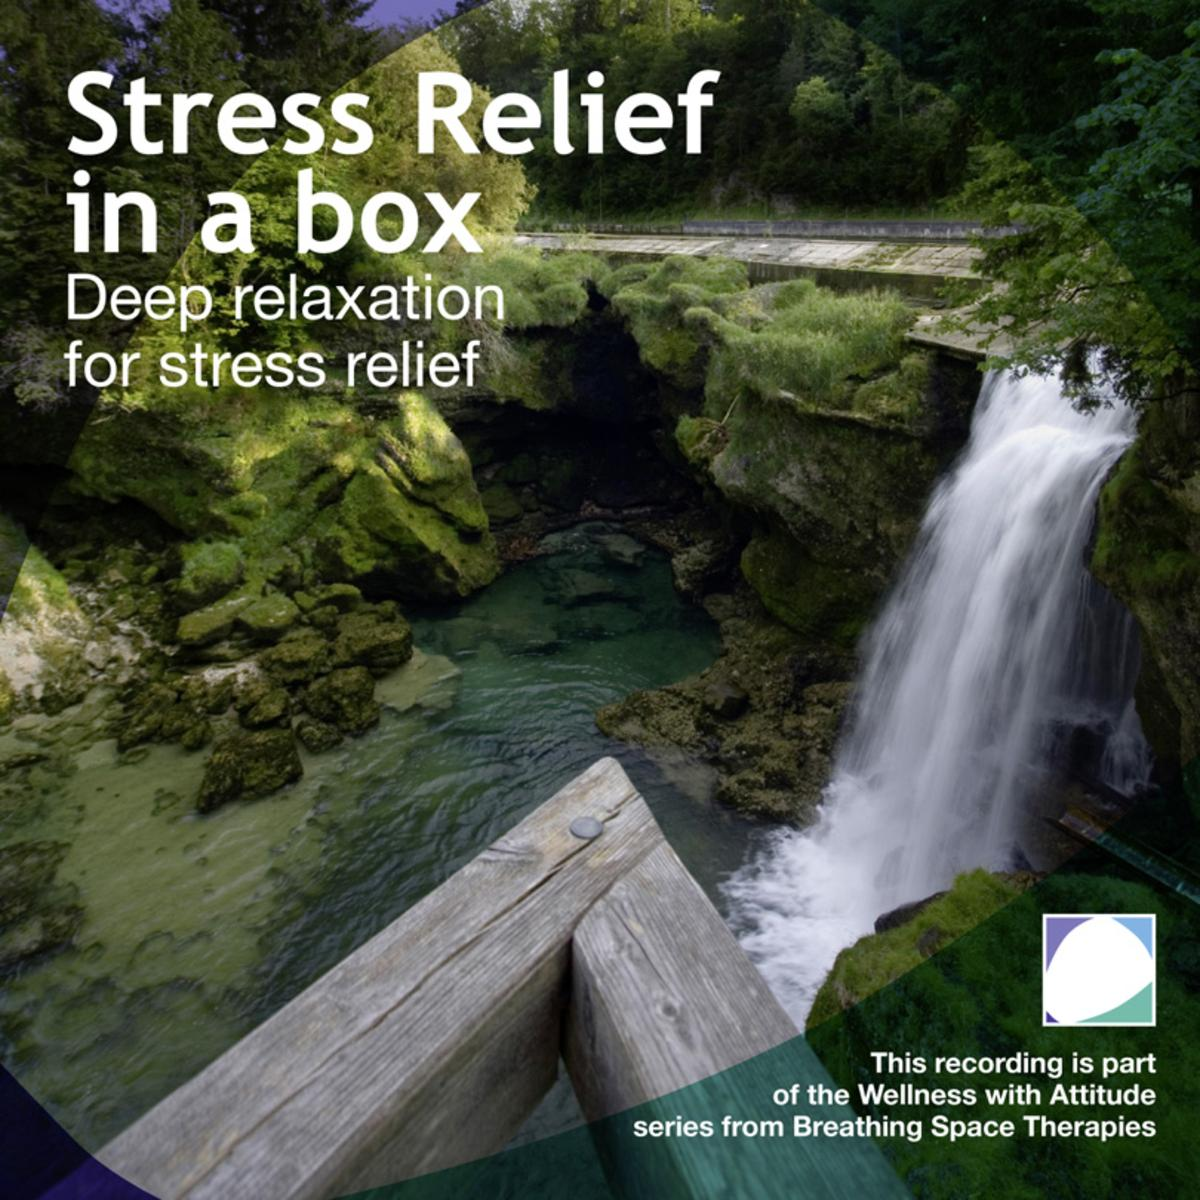 Stress relief in a box - Audiobook